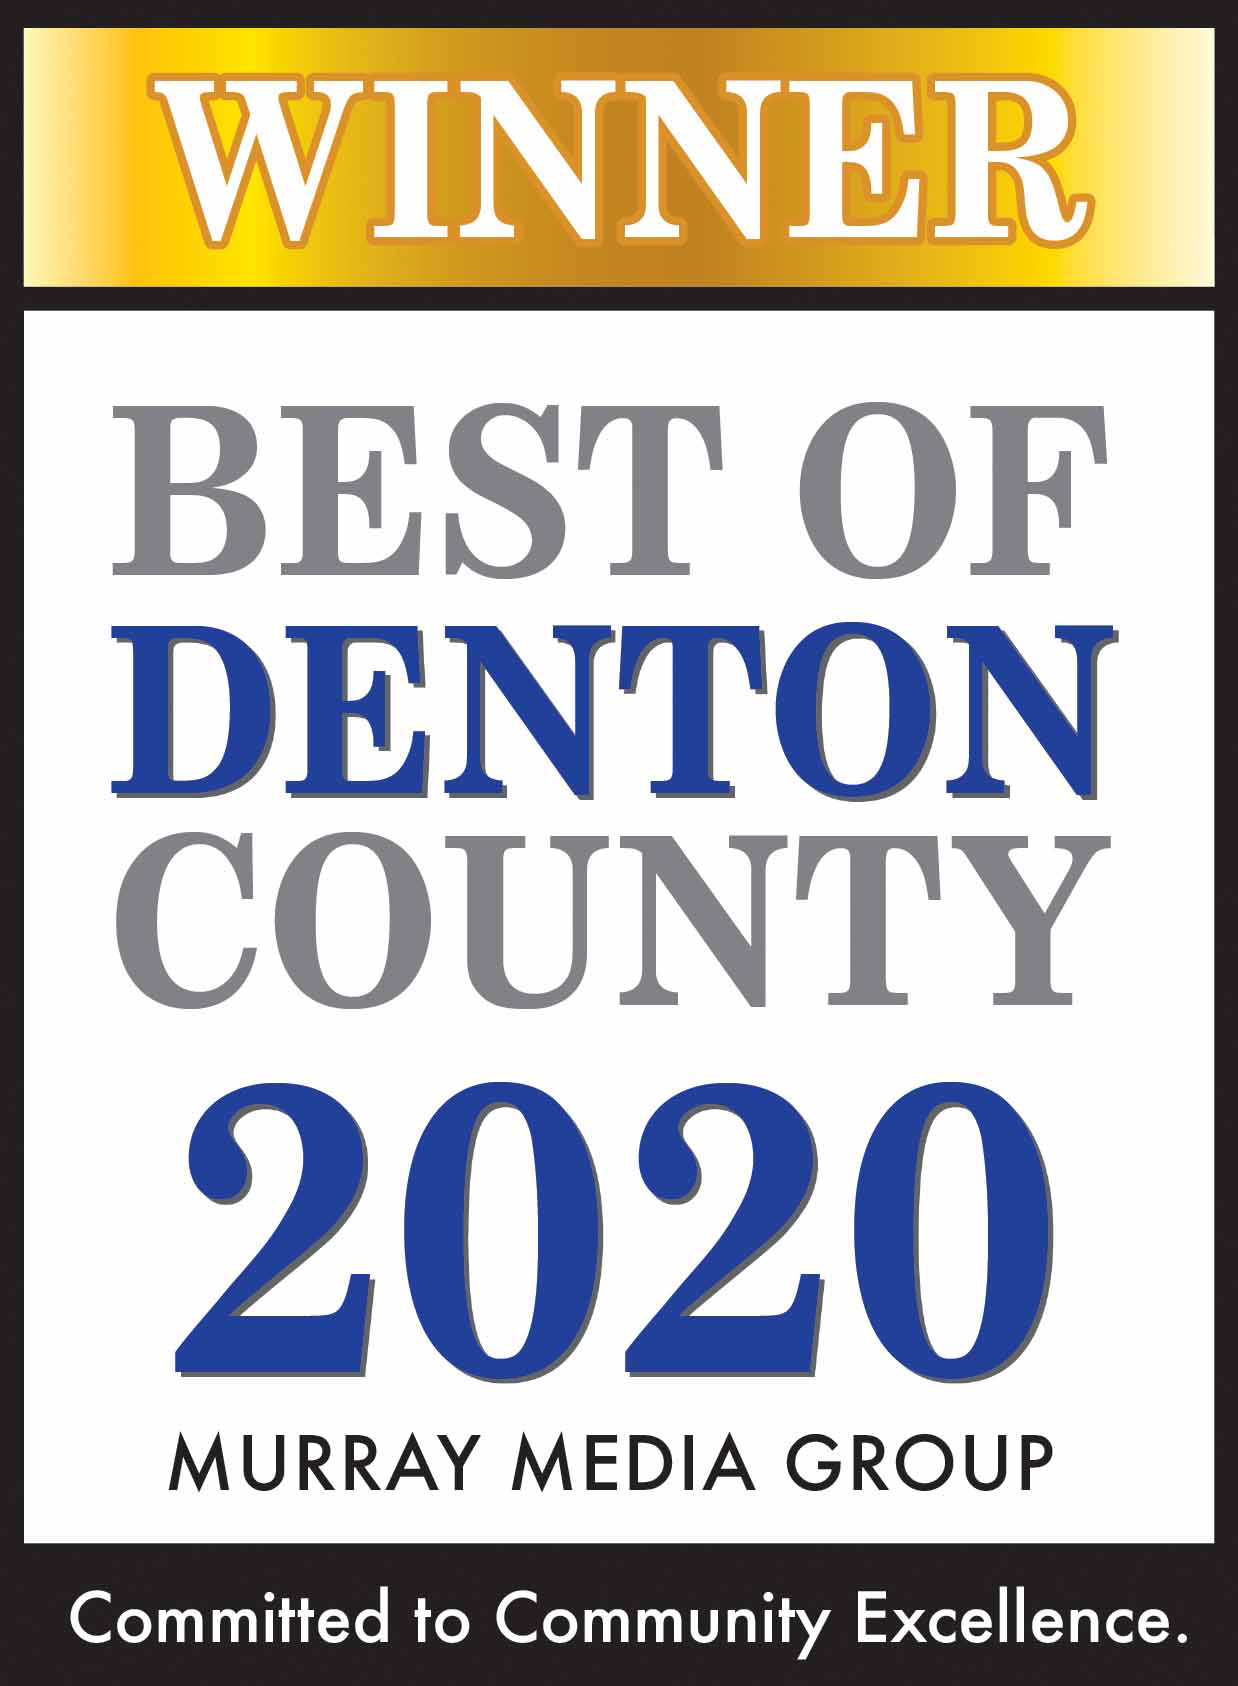 Best of Denton County Winner 2020